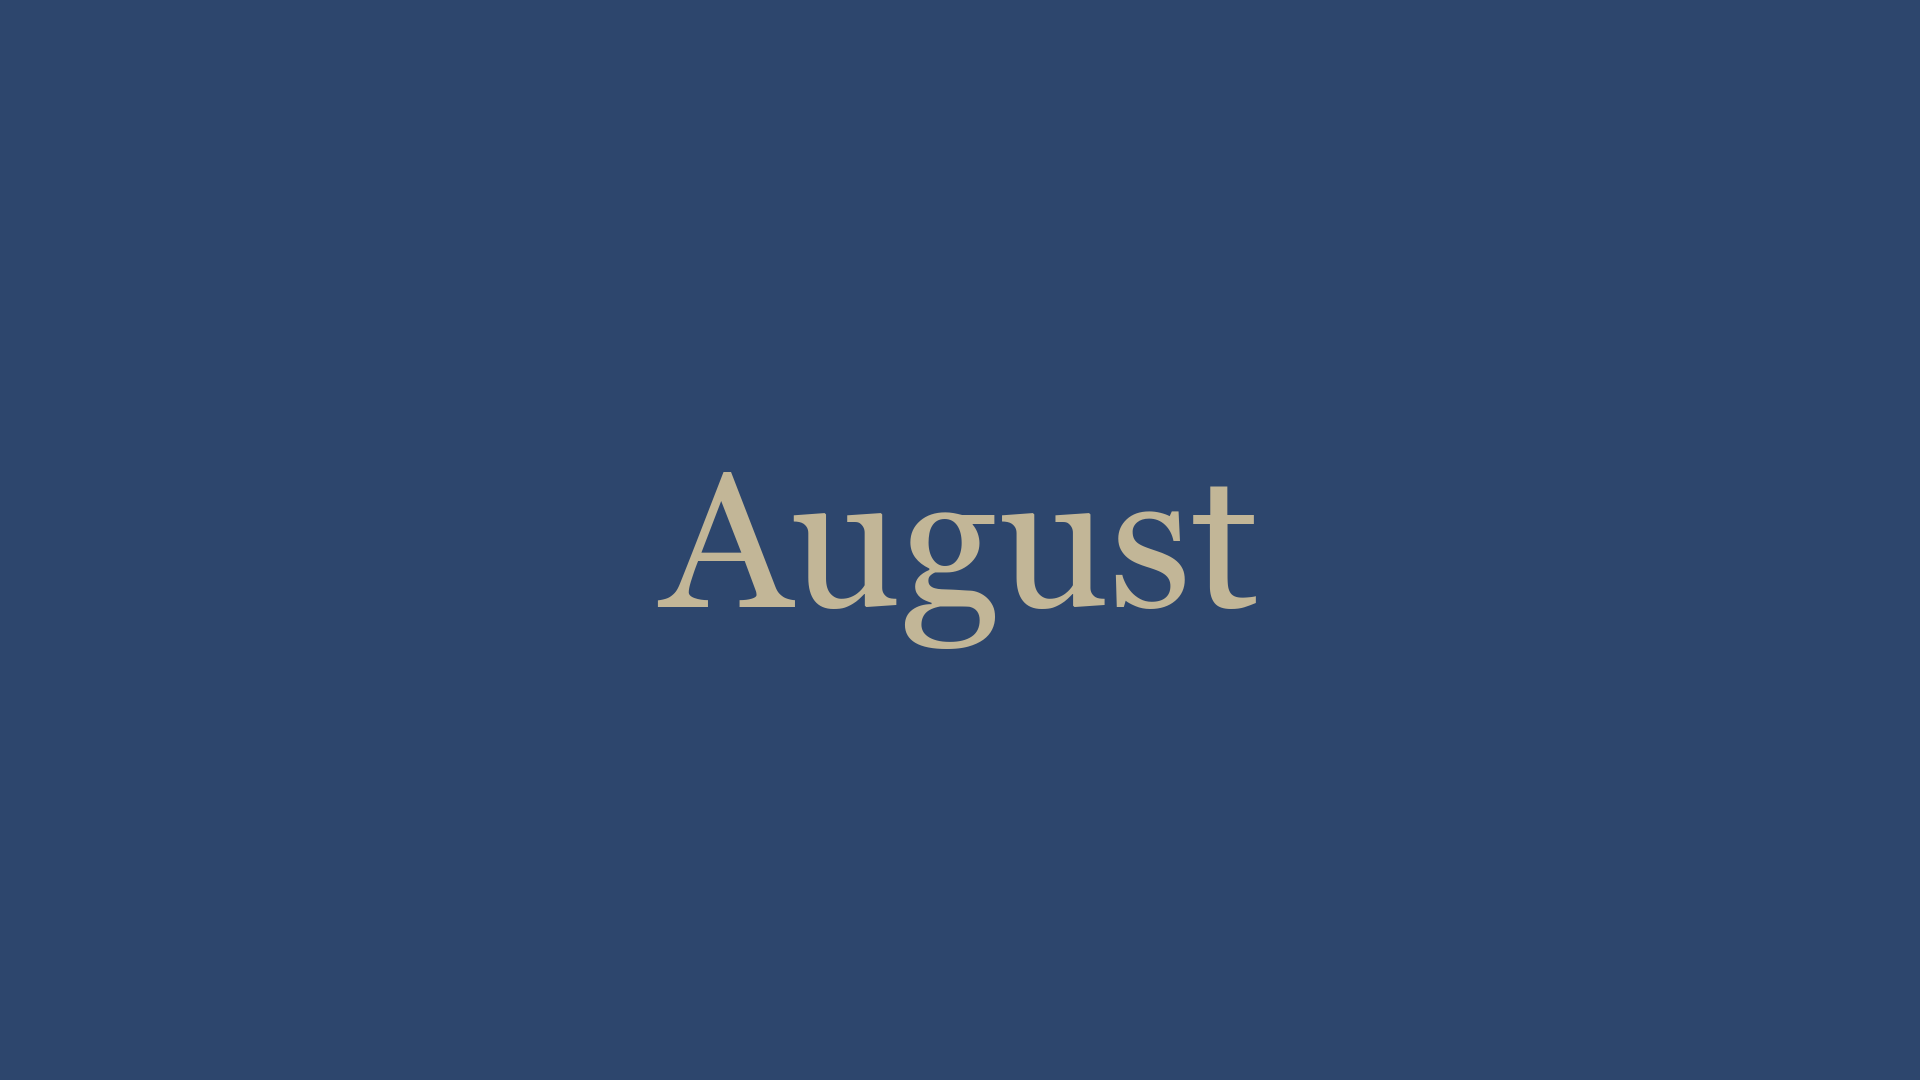 August '21